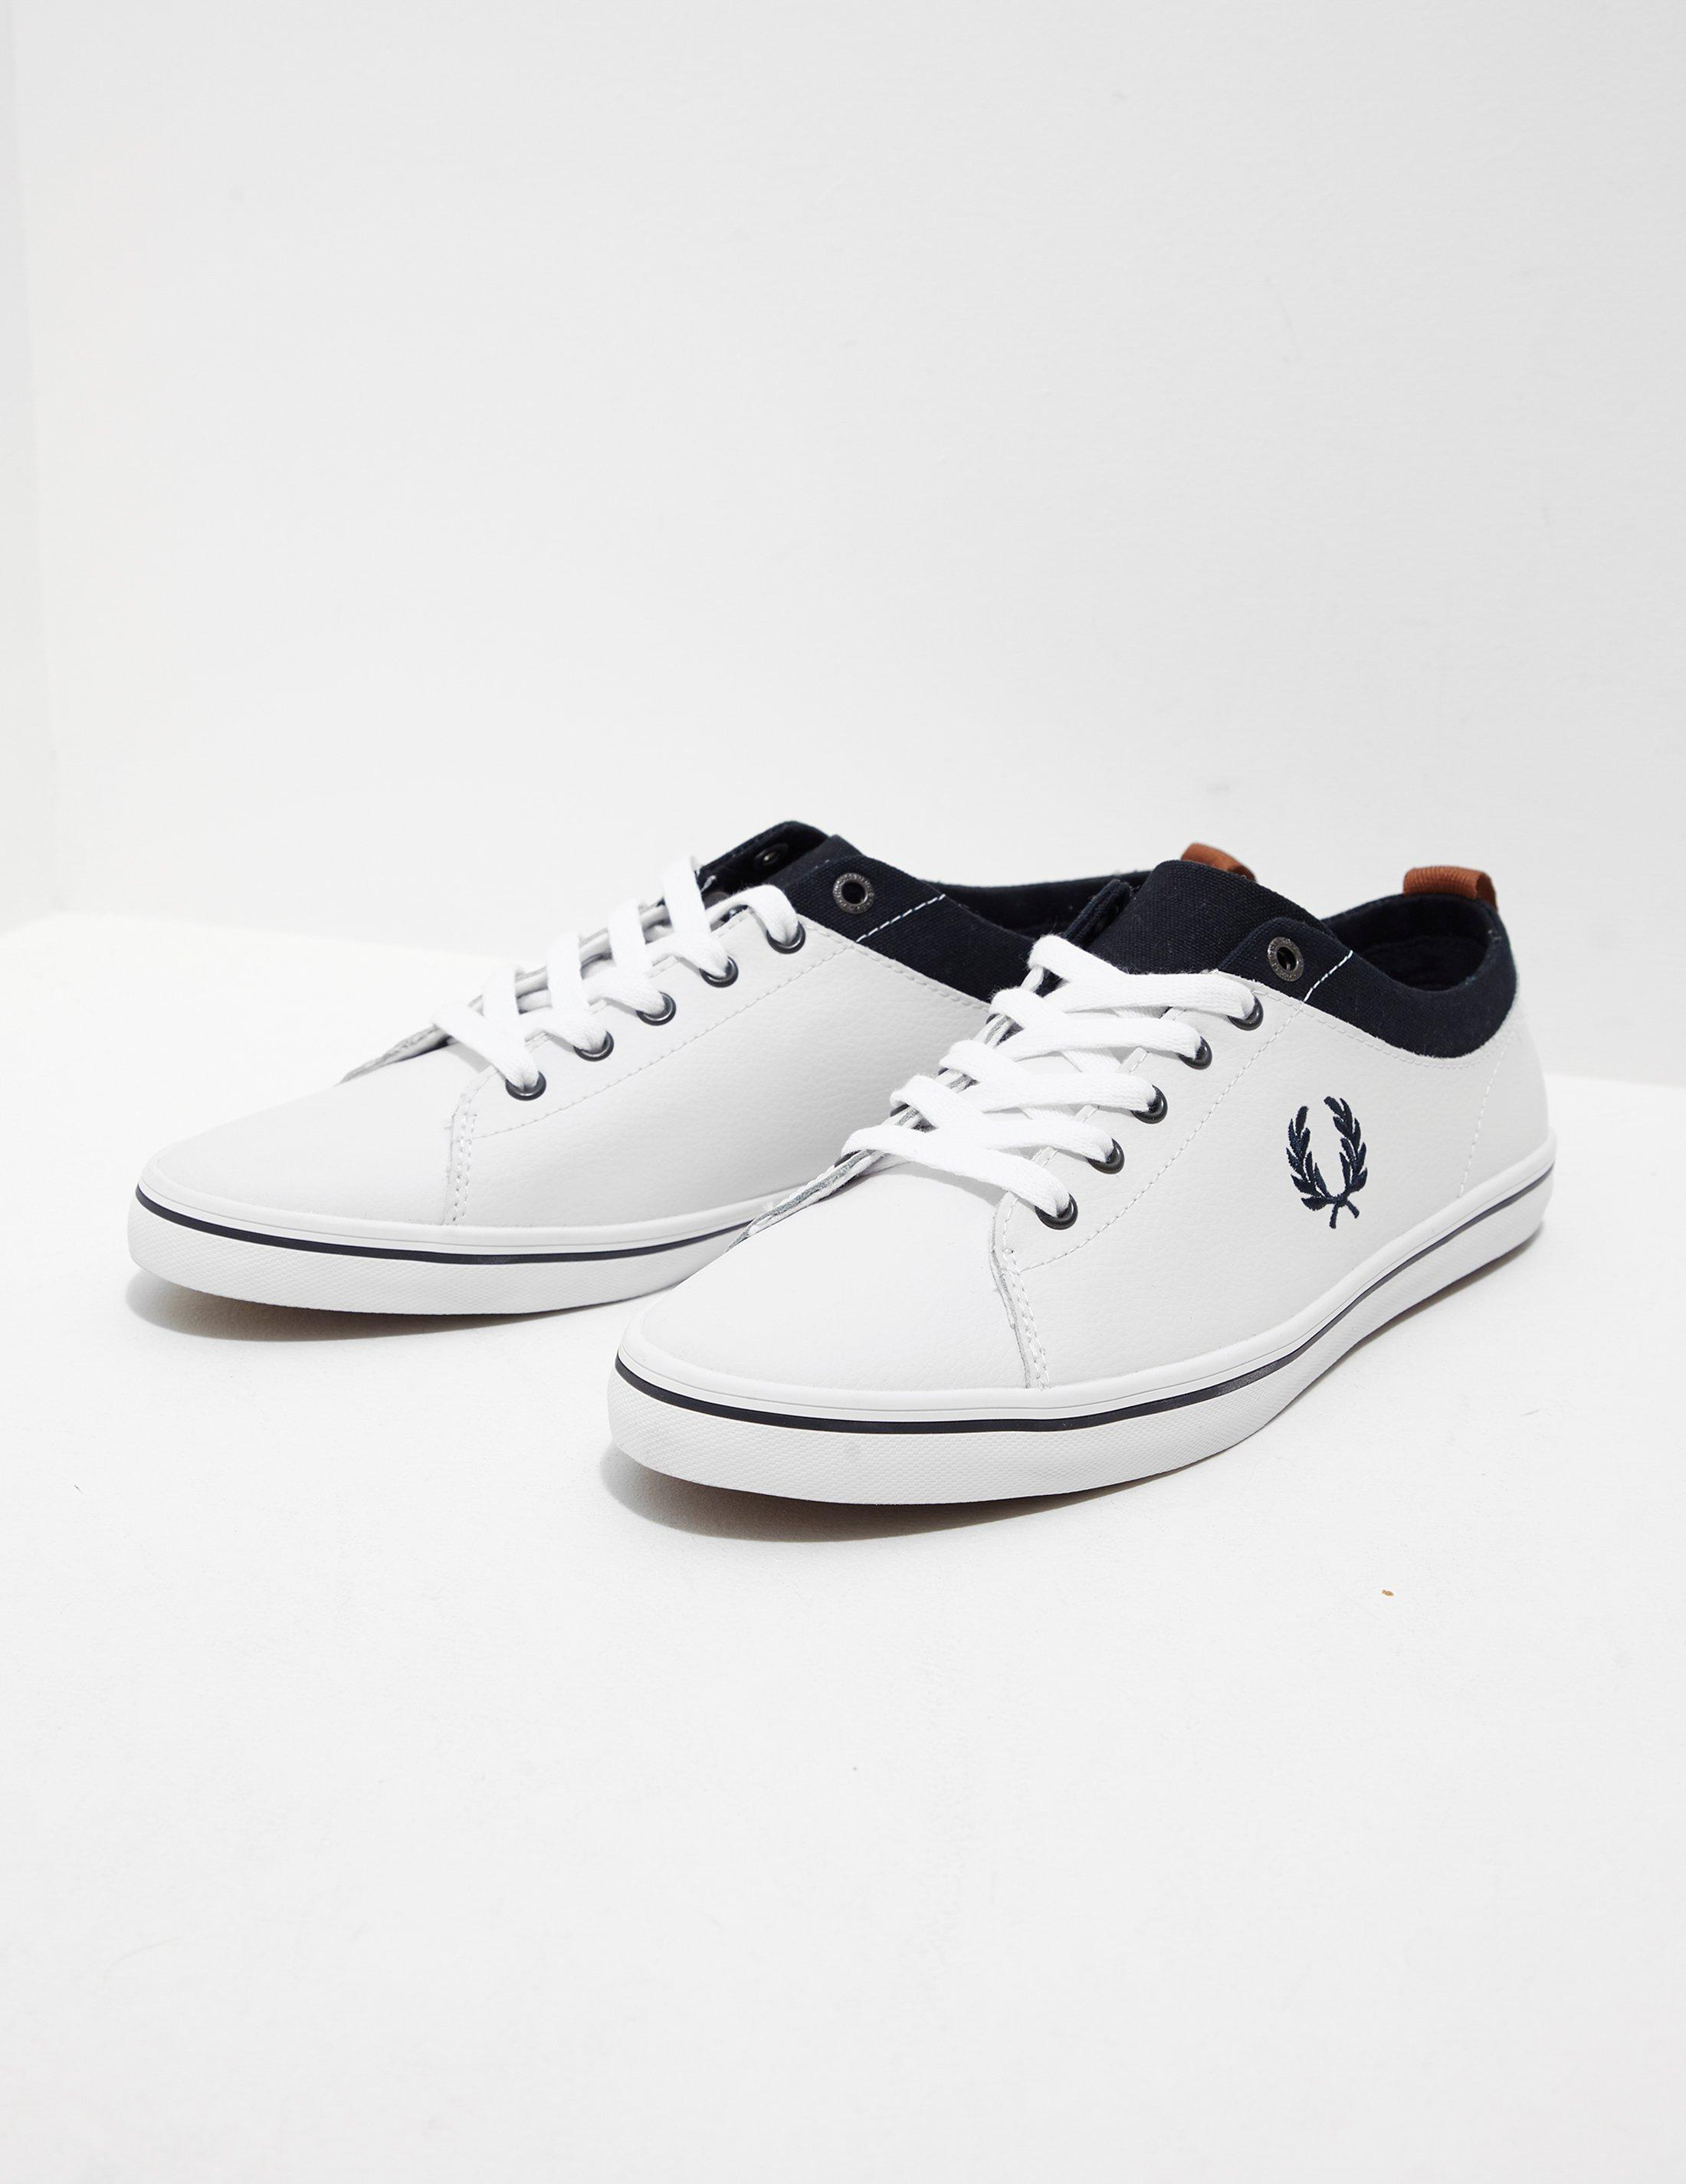 Fred Perry Hallam - Exclusive - Navy/Tan